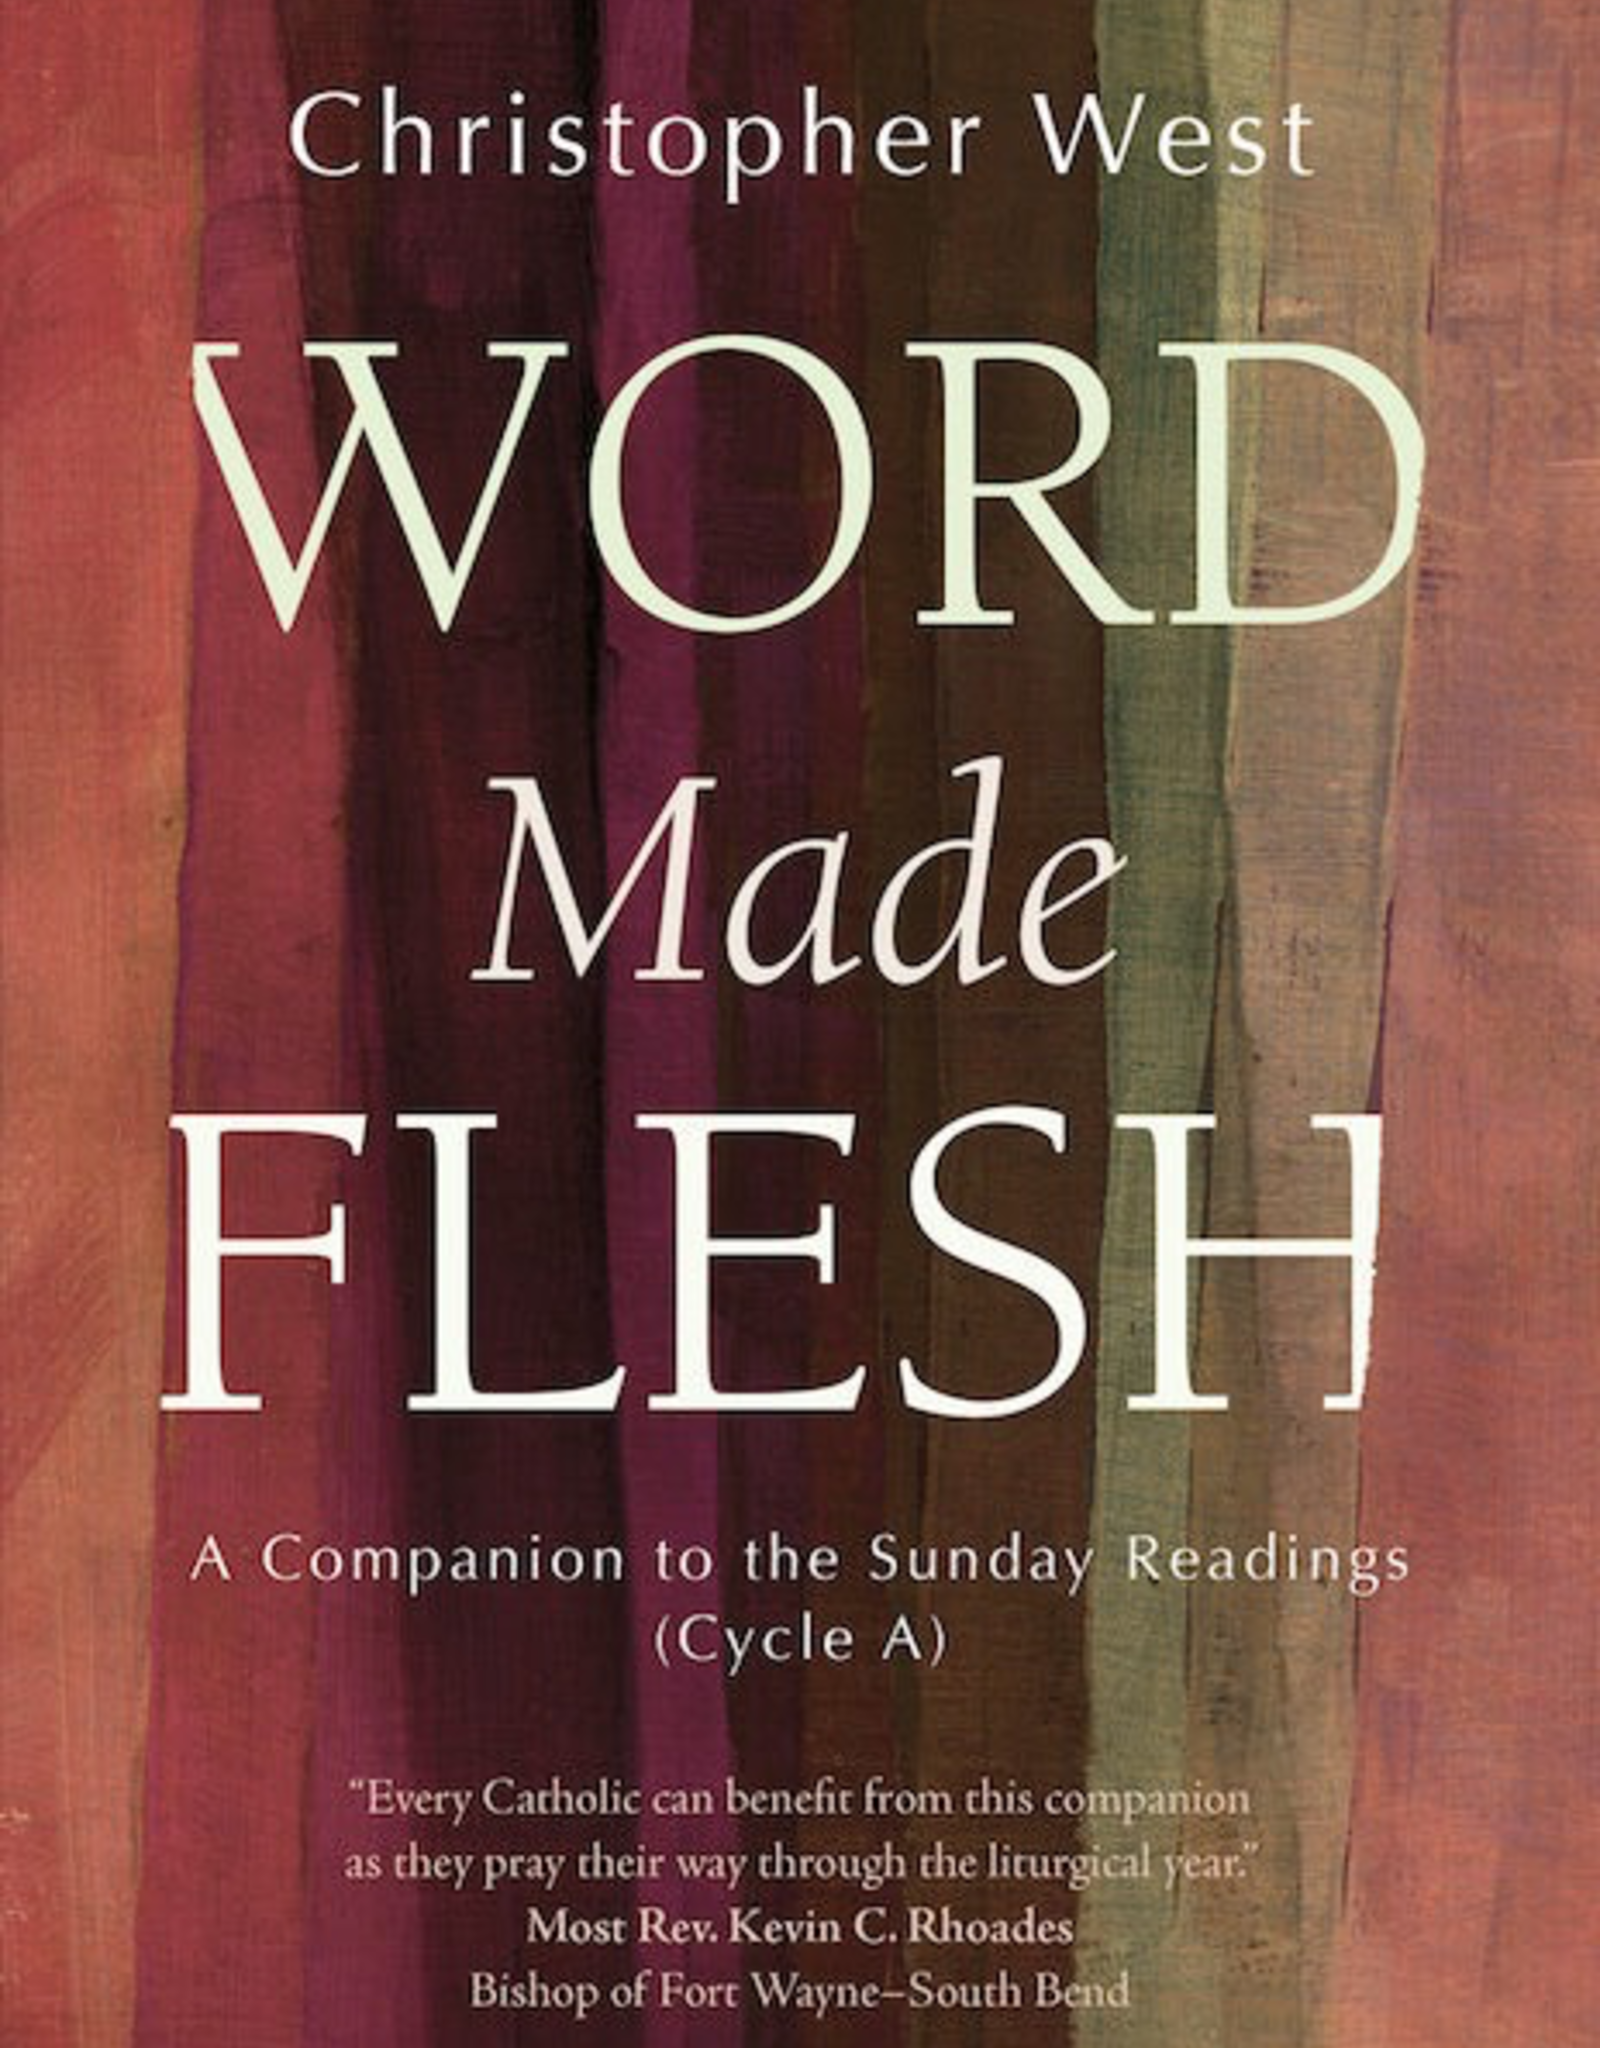 Ave Maria Press Word Made Flesh:  A Companion to the Sunday Readings (Cycle A), by Christopher West (paperback)